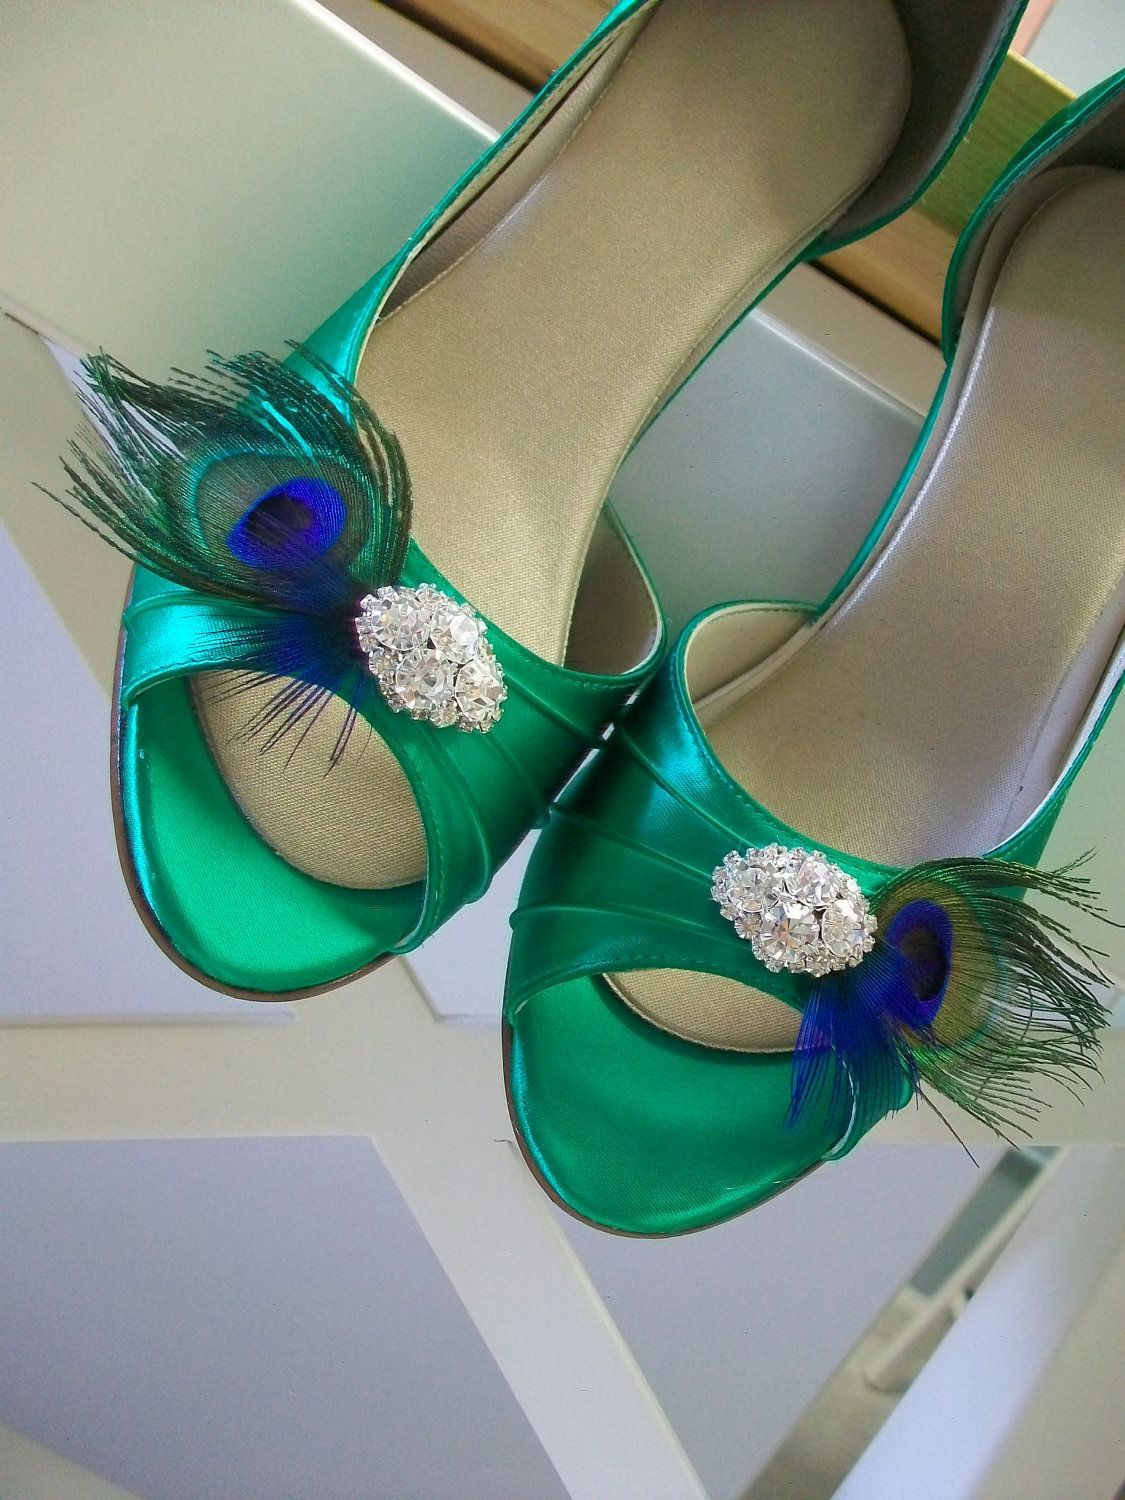 Popular Items For Green High Heels On Etsy Peacock Shoes Feather Shoes Green High Heels